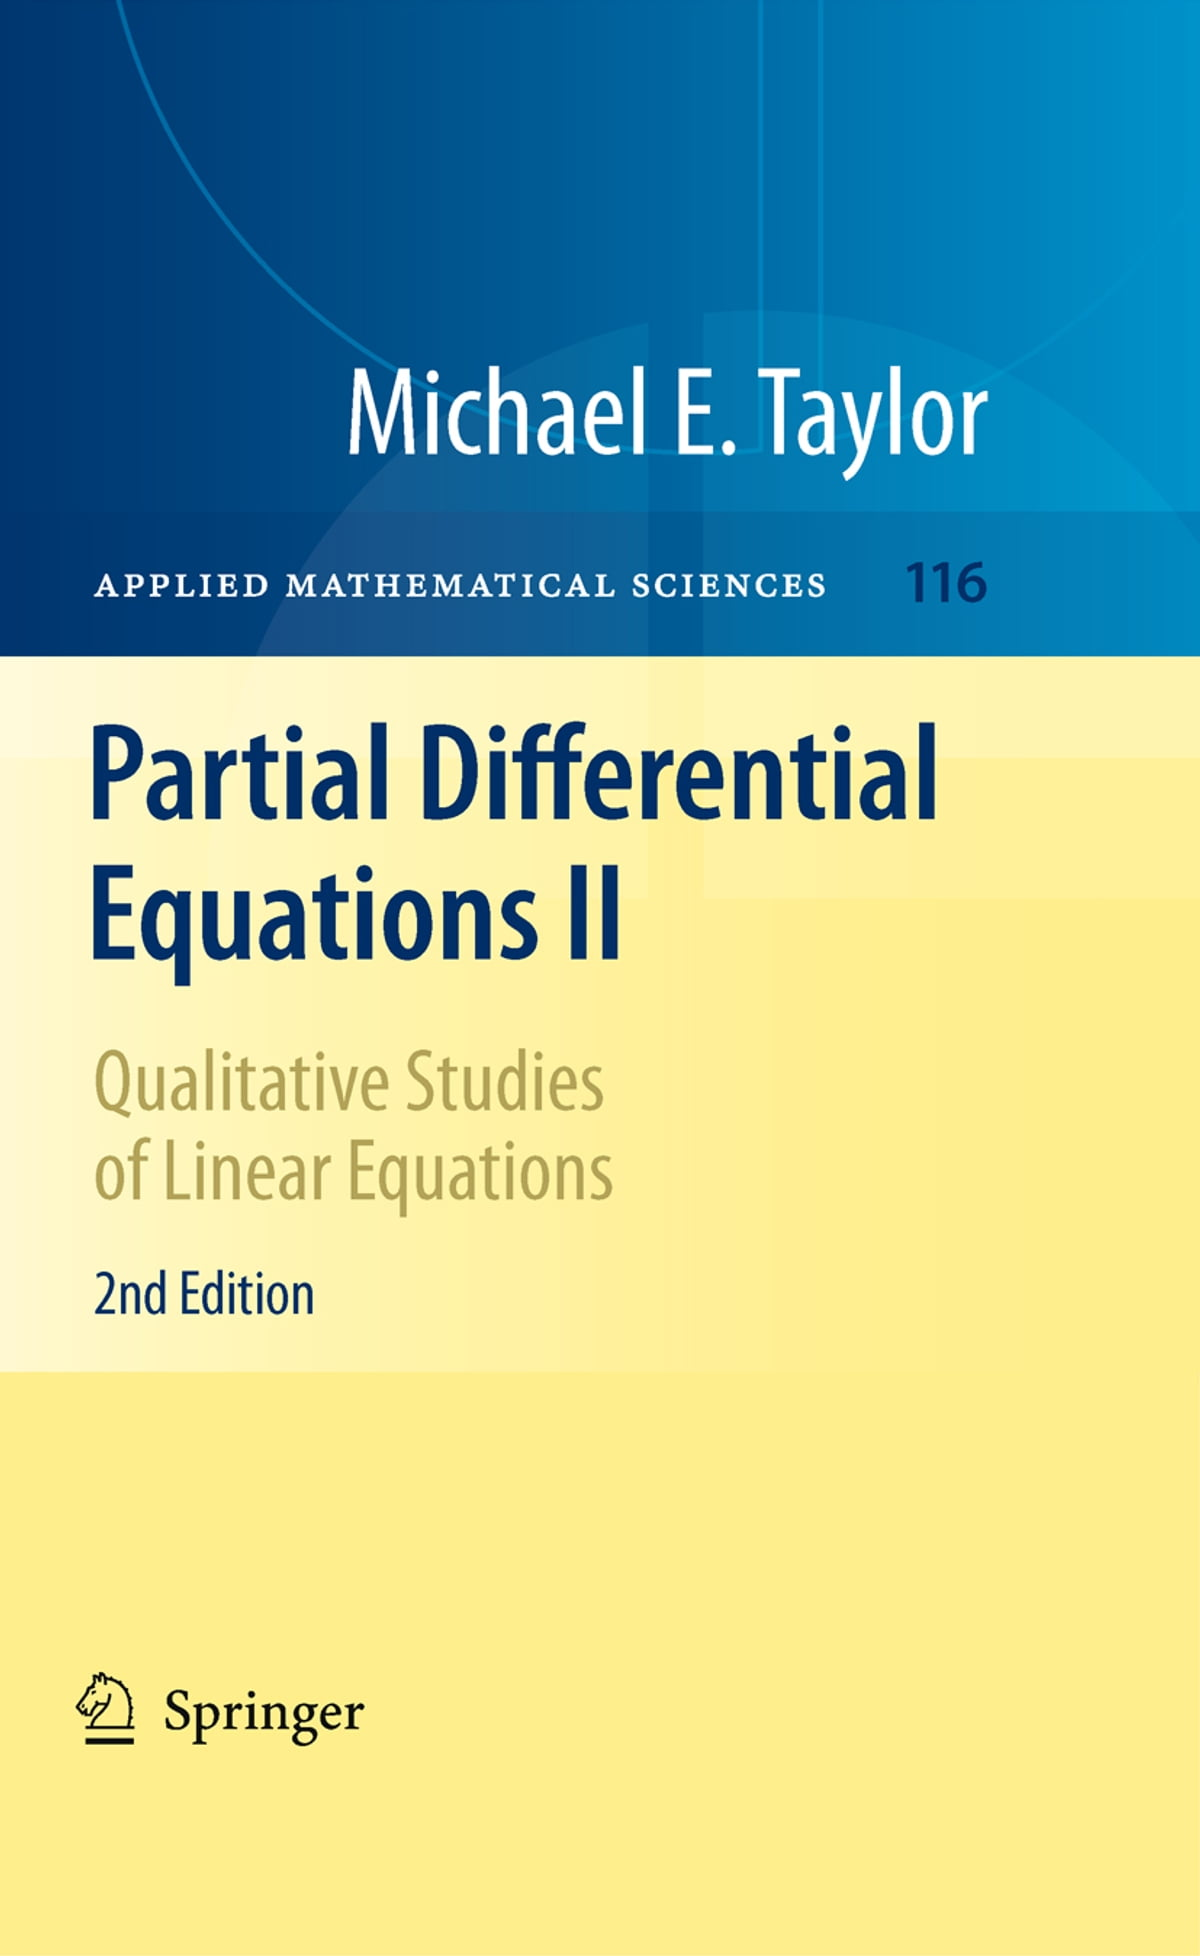 Partial Differential Equations II eBook by Michael E. Taylor -  9781441970527 | Rakuten Kobo